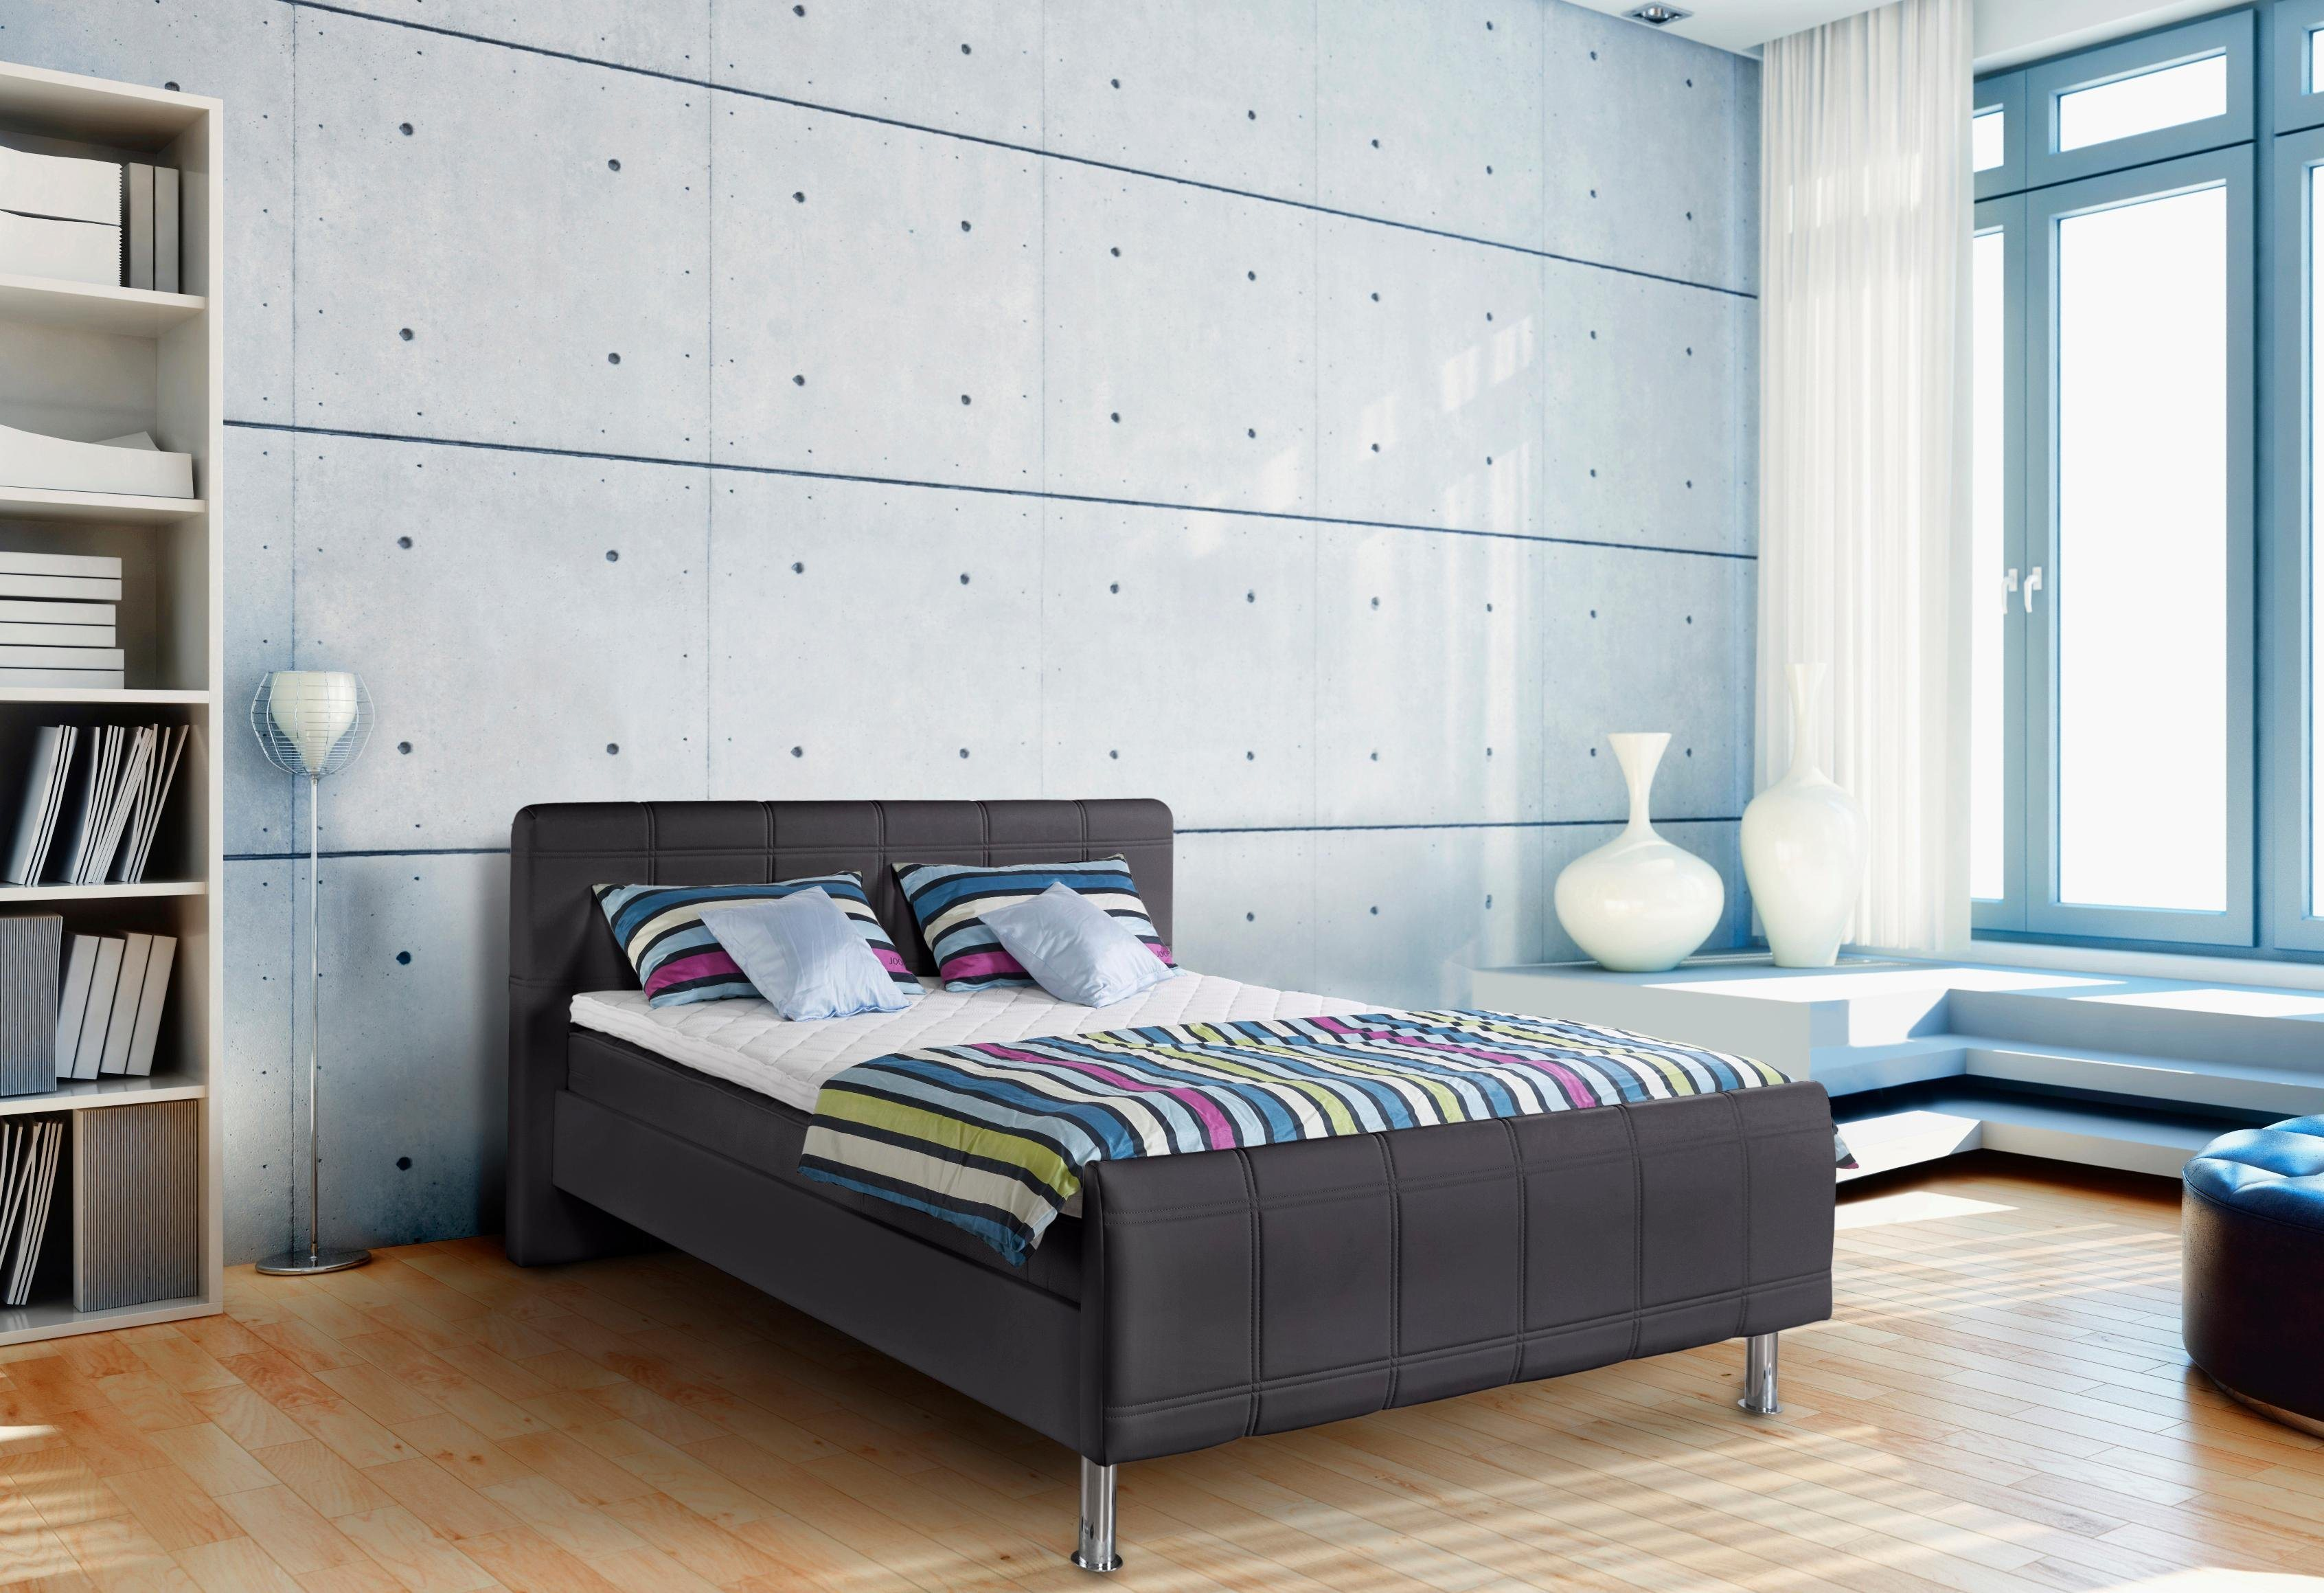 chrom federn boxspringbetten online kaufen m bel. Black Bedroom Furniture Sets. Home Design Ideas